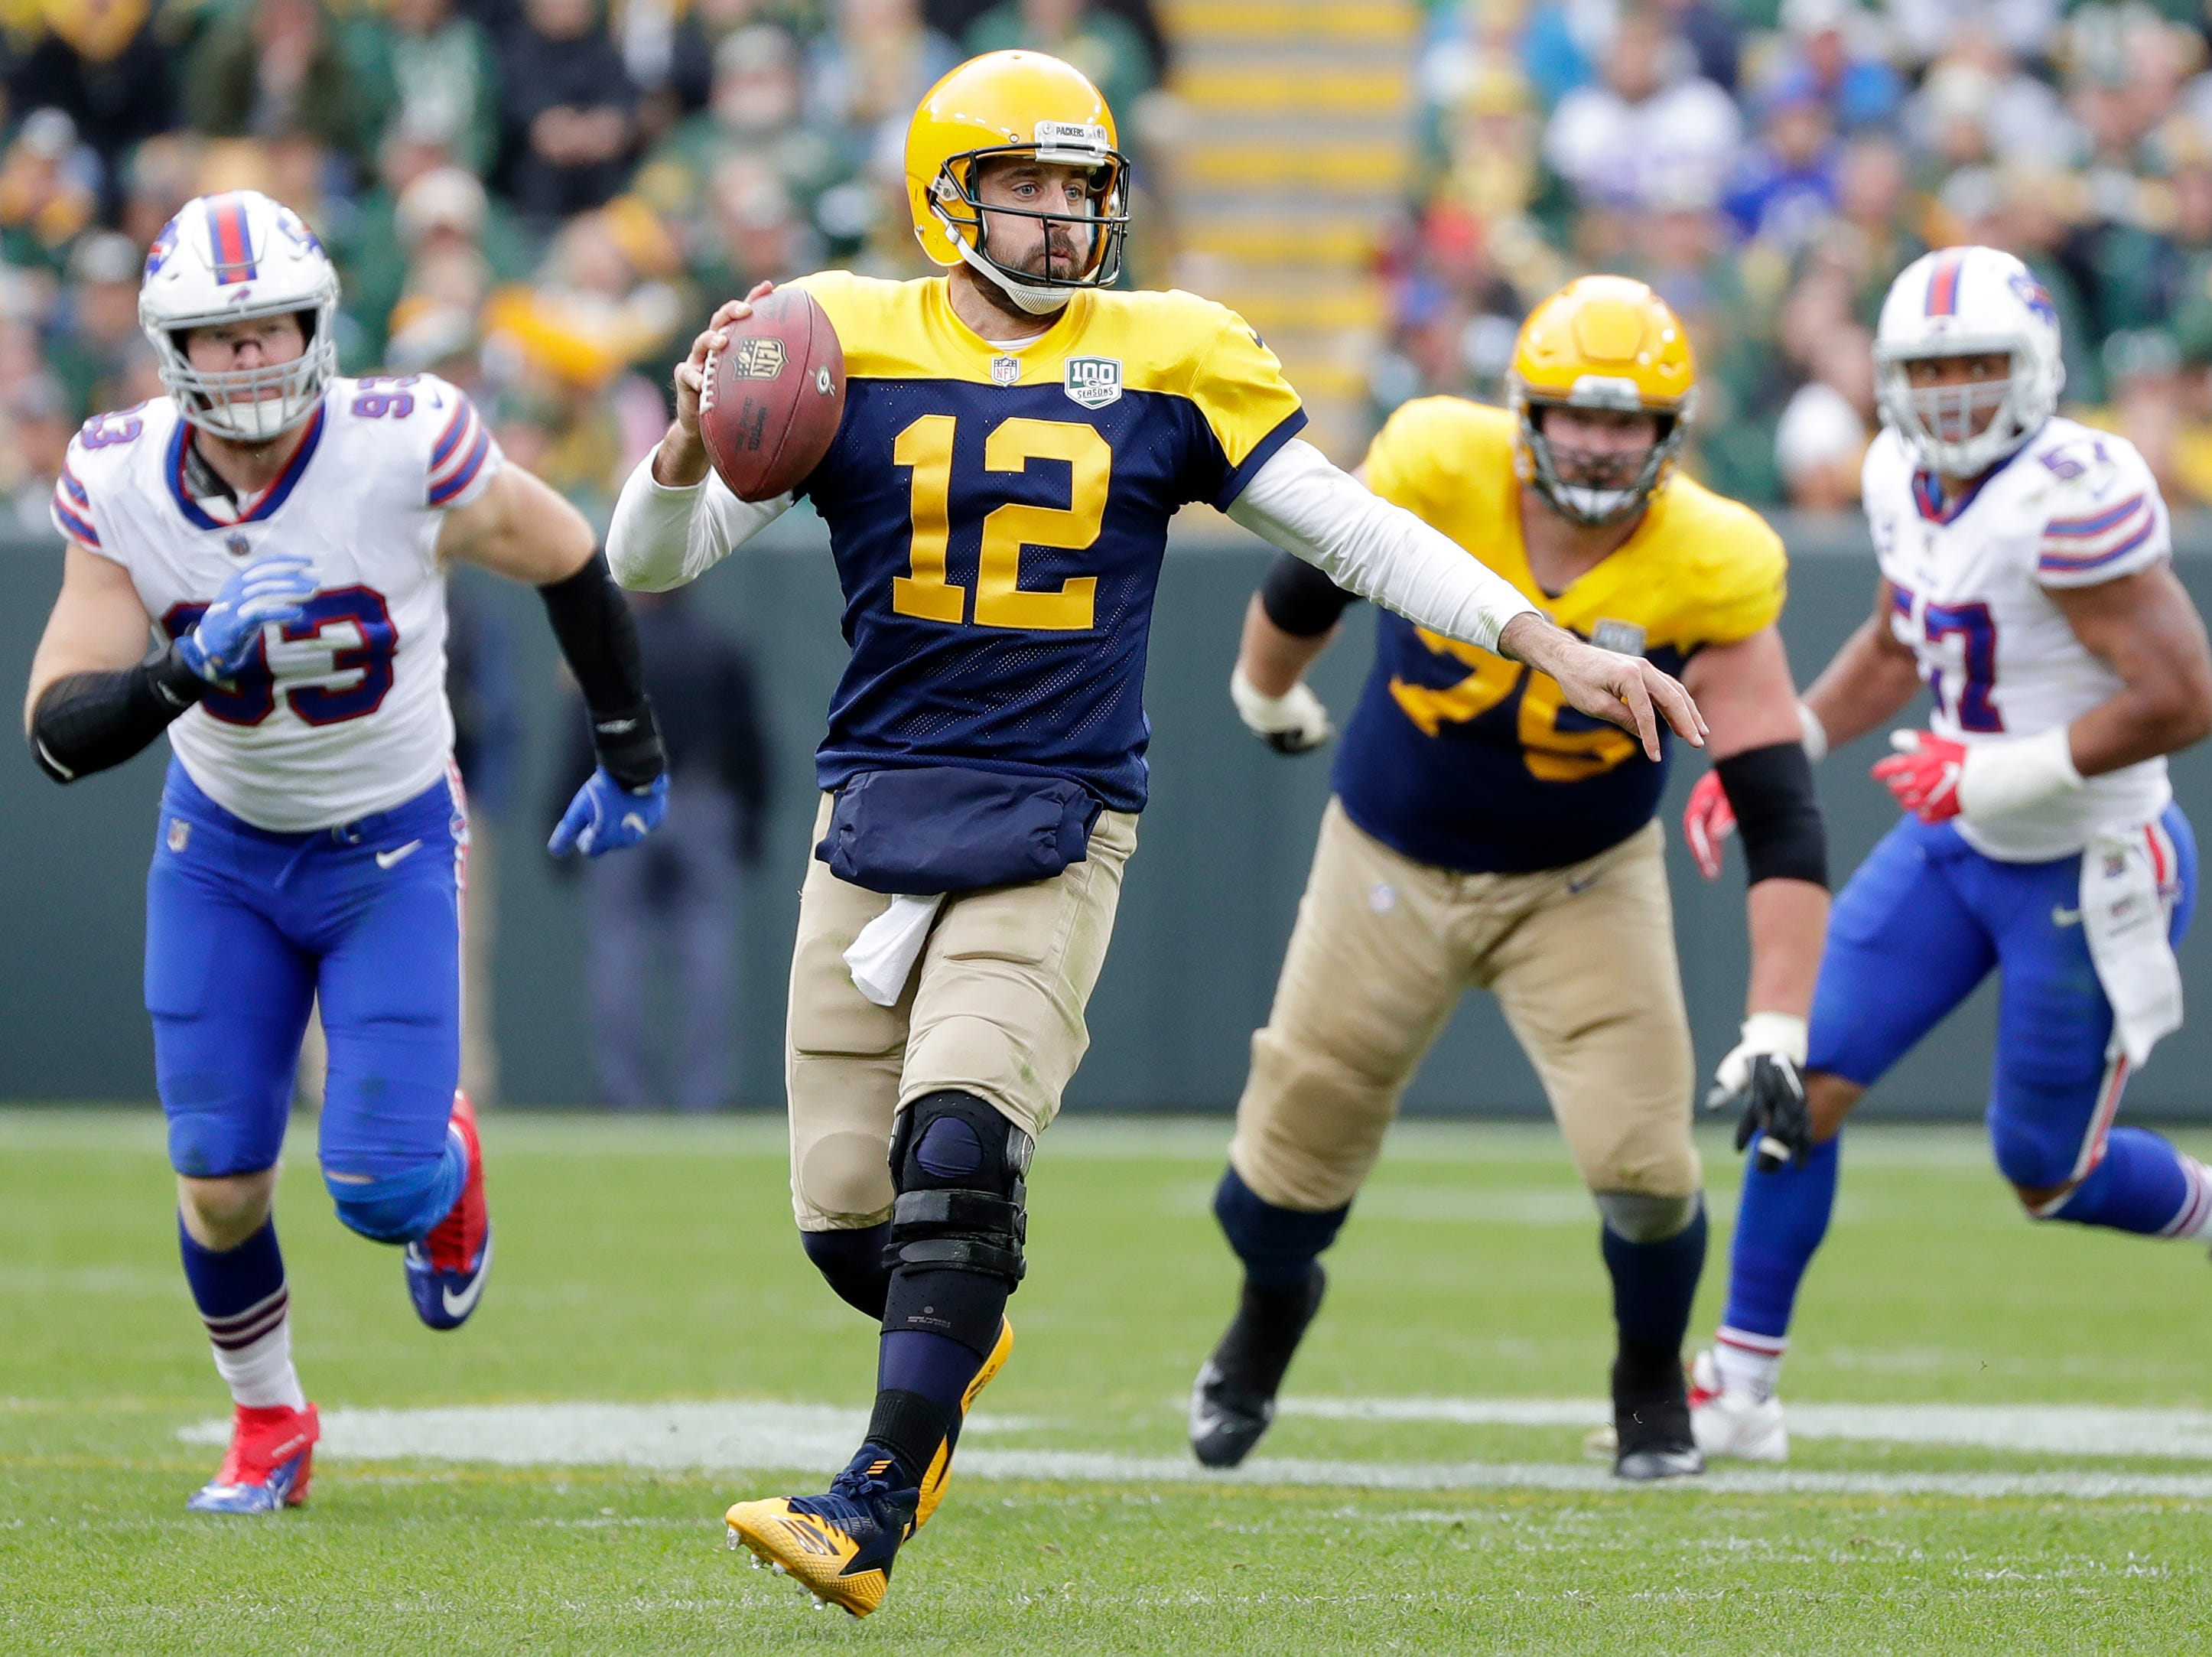 Green Bay Packers quarterback Aaron Rodgers (12) scrambles against the Buffalo Bills in the fourth quarter at Lambeau Field on Sunday, September 30, 2018 in Green Bay, Wis.